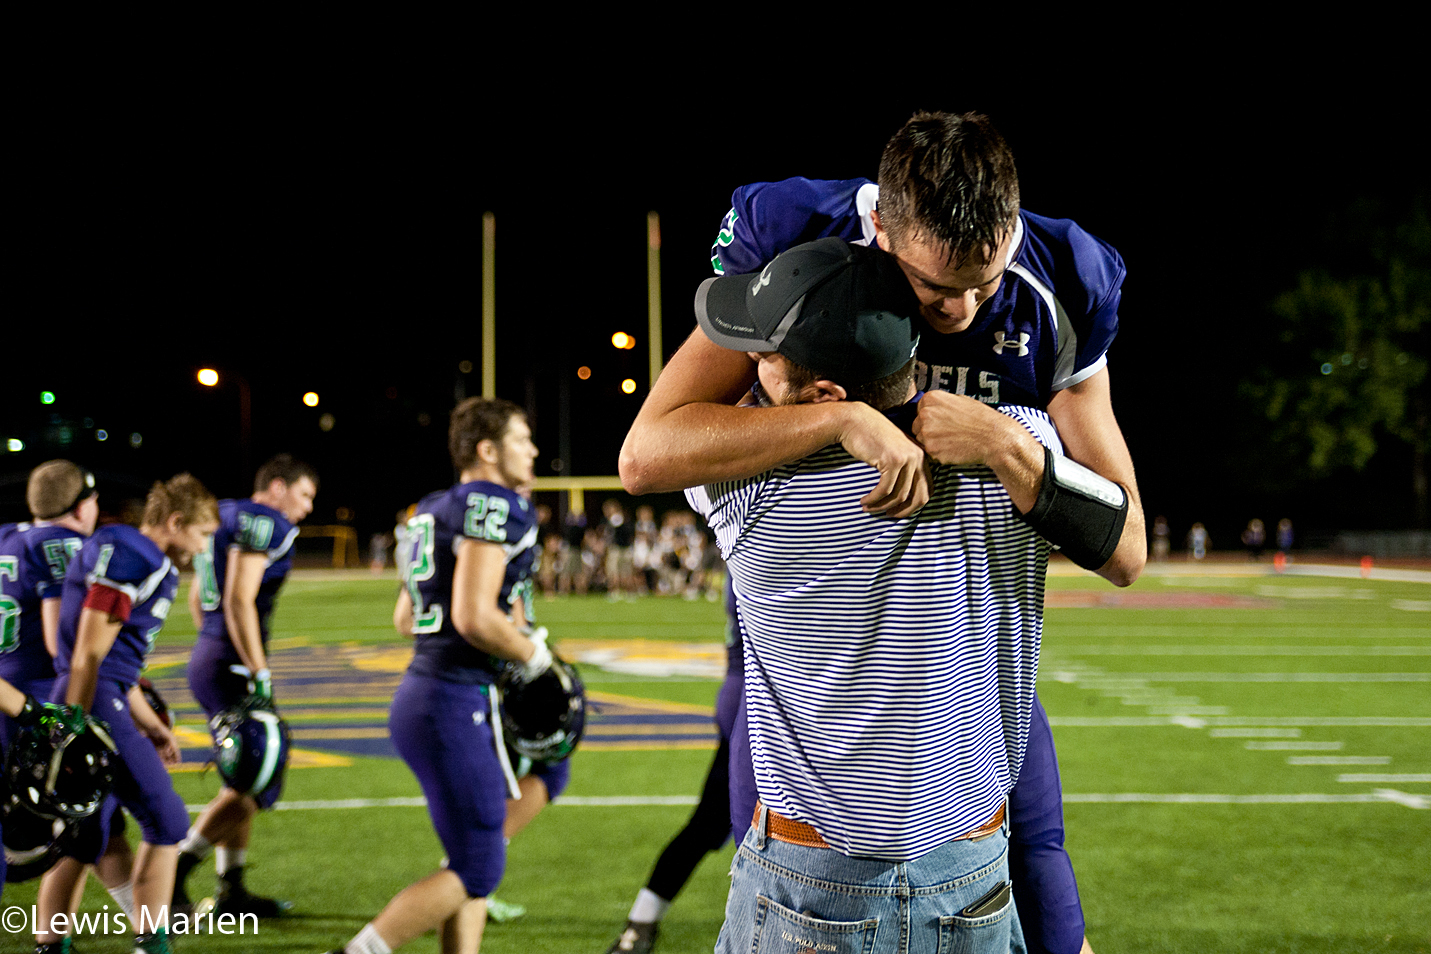 South Fulton's Trace Hood leaps into his father's arms after the Rebels defeated the Abingdon-Avon Tornadoes 32-26 on Sept. 25 at Western Illinois University's Hanson Field in Macomb, Ill.